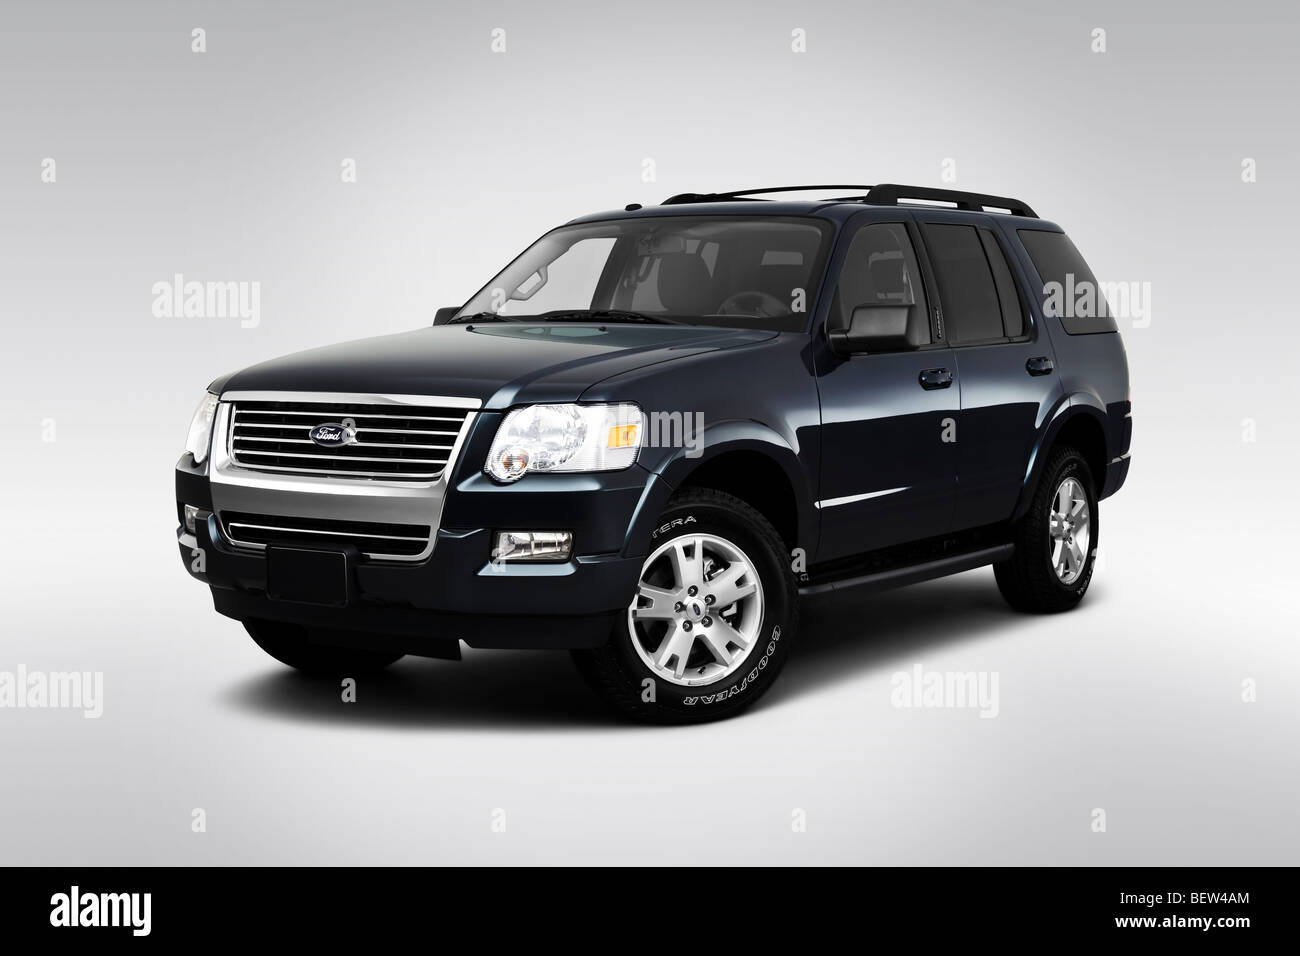 2010 ford explorer xlt in black front angle view